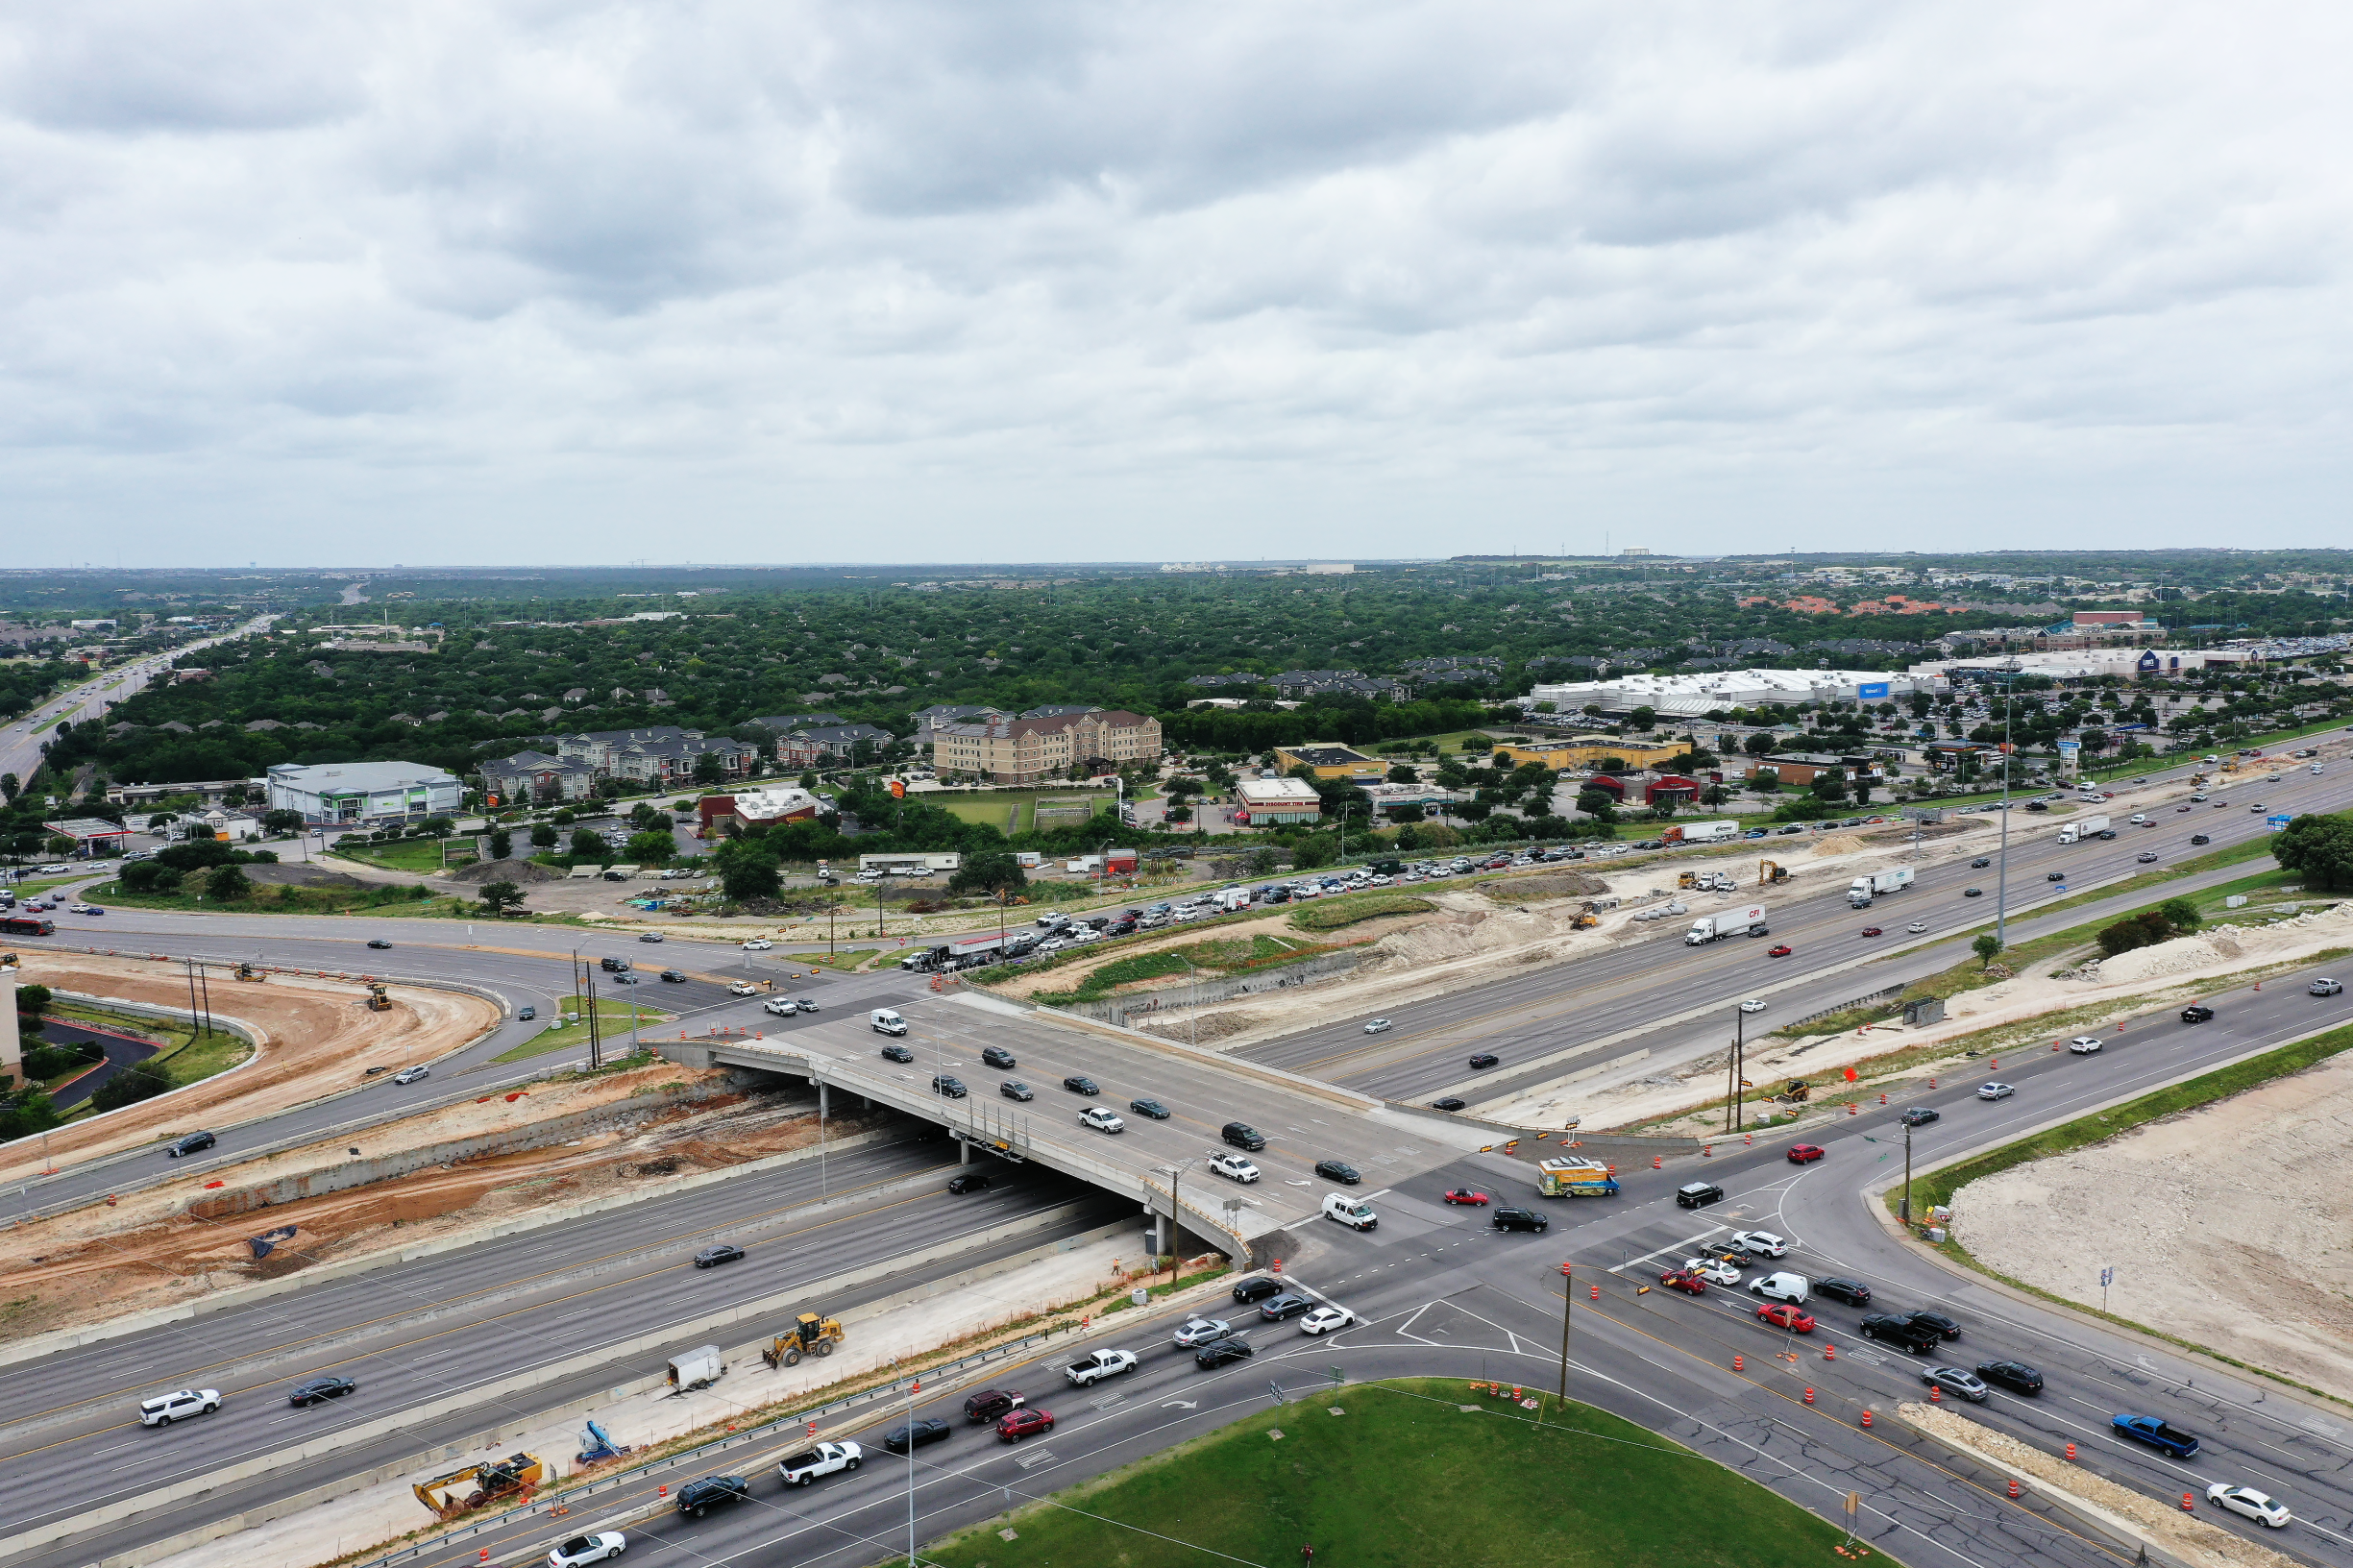 /upload/files/Parmer Lane/DJI_0788_I_35_at_Parmer_Lane_bri.png